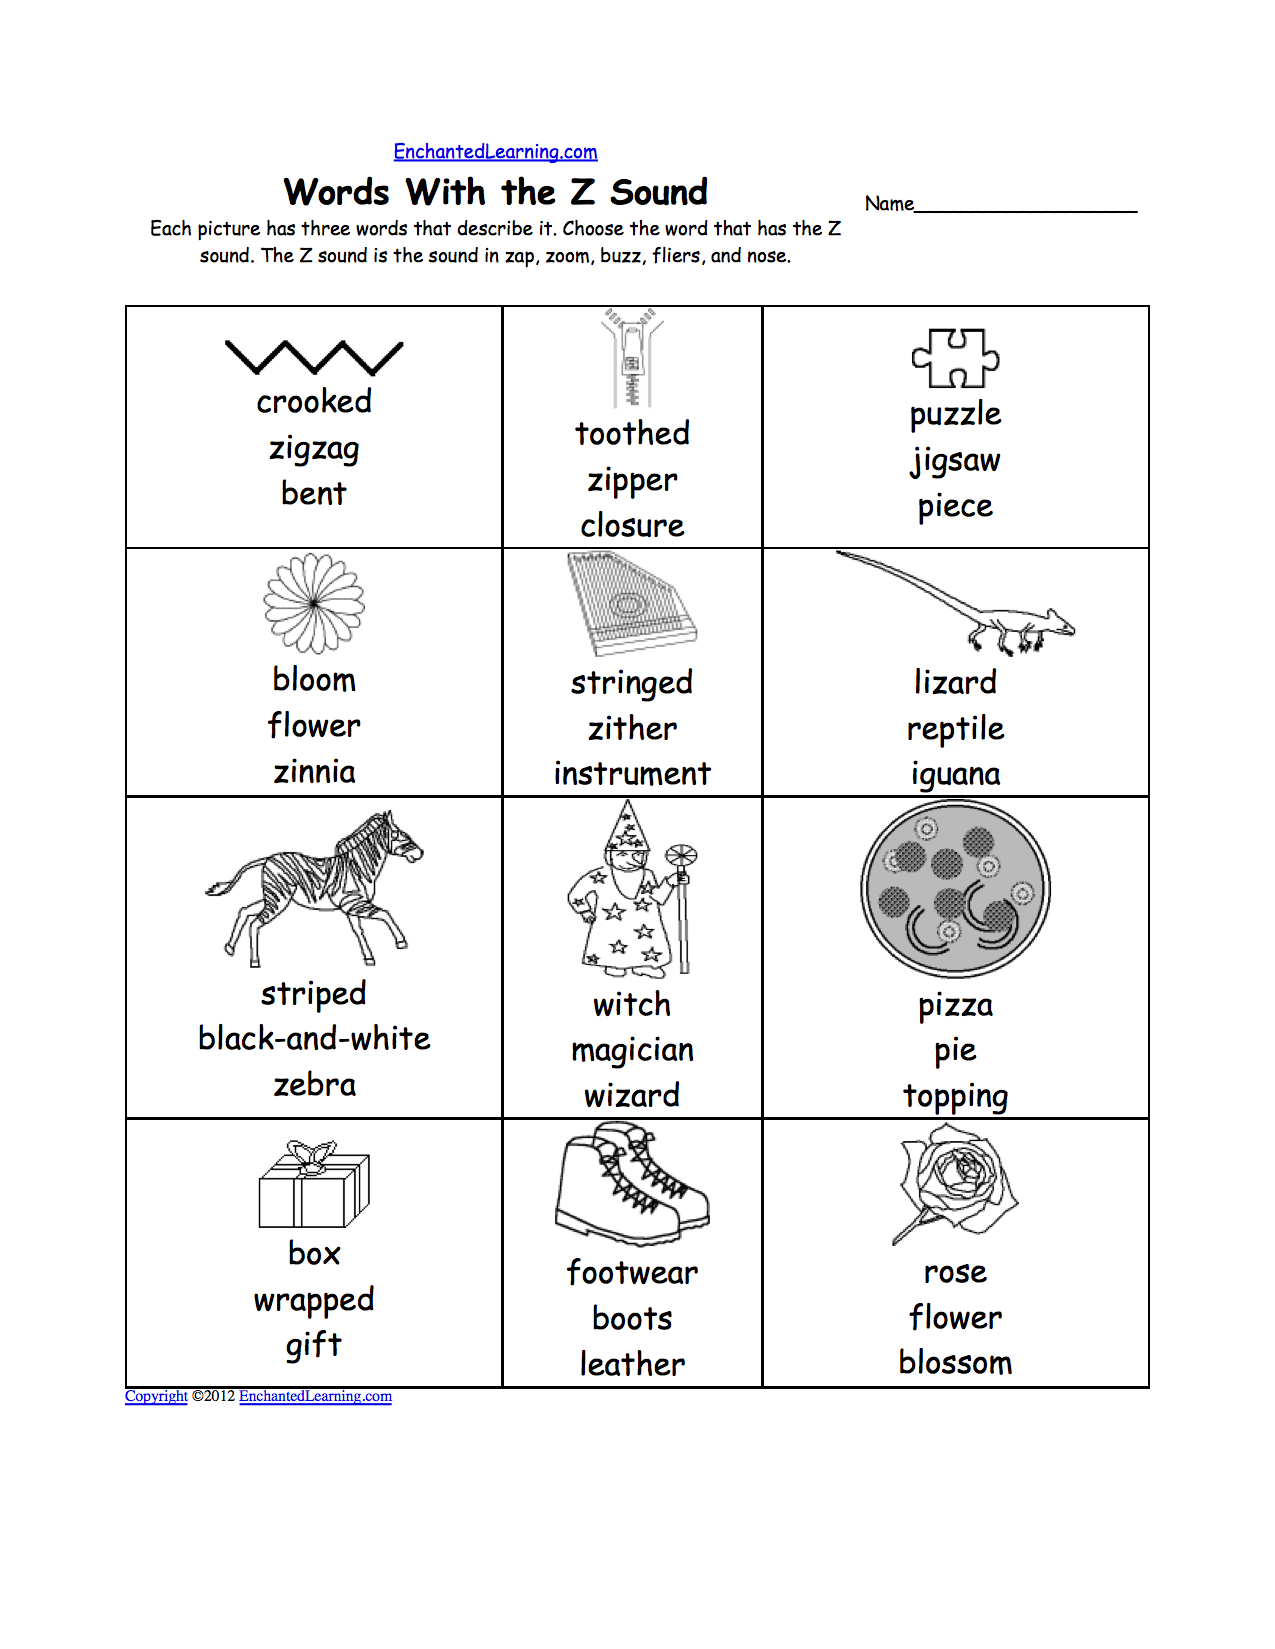 Aldiablosus  Scenic Phonics Worksheets Multiple Choice Worksheets To Print  With Entrancing Phonics Worksheets Multiple Choice Worksheets To Print  Enchantedlearningcom With Amusing Tonicity And Osmosis Worksheet Answers Also Independent Variable Vs Dependent Variable Worksheet In Addition Worksheet  Molecular Shapes And Short E Worksheet As Well As First Grade Fun Worksheets Additionally Geography Terms Worksheet From Enchantedlearningcom With Aldiablosus  Entrancing Phonics Worksheets Multiple Choice Worksheets To Print  With Amusing Phonics Worksheets Multiple Choice Worksheets To Print  Enchantedlearningcom And Scenic Tonicity And Osmosis Worksheet Answers Also Independent Variable Vs Dependent Variable Worksheet In Addition Worksheet  Molecular Shapes From Enchantedlearningcom